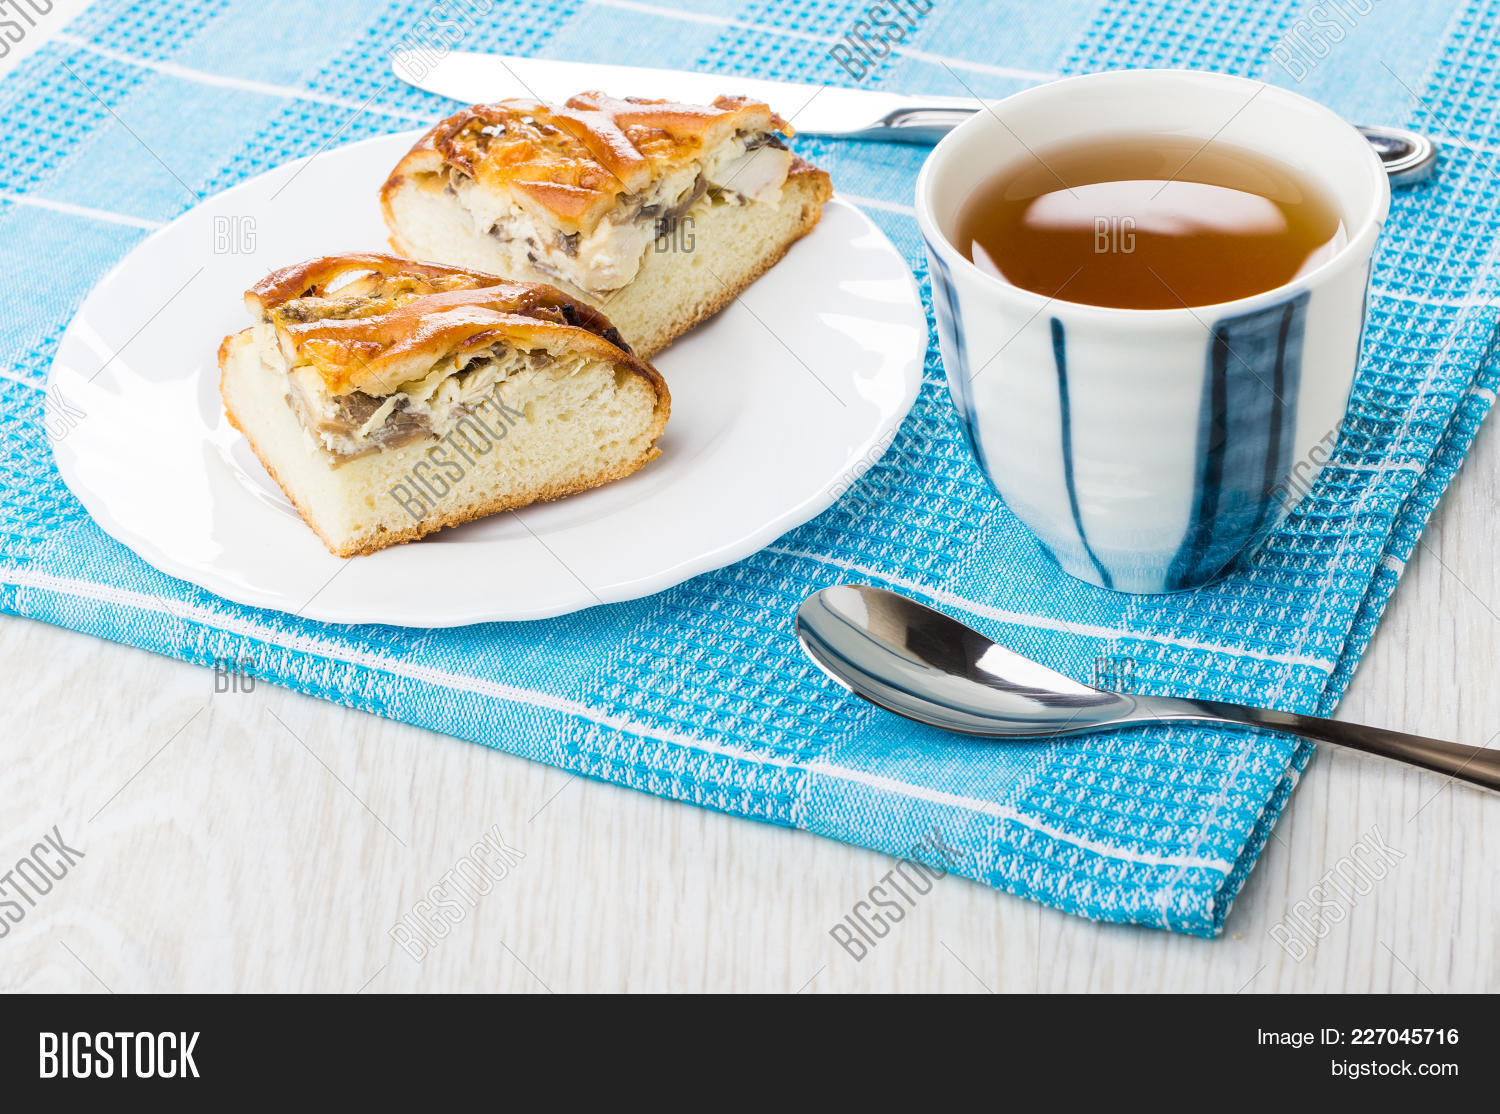 Pieces Of Pie With Chicken In Plate Table Knife Cup Of Tea Teaspoon & Pieces Pie Chicken Plate Table Image u0026 Photo | Bigstock